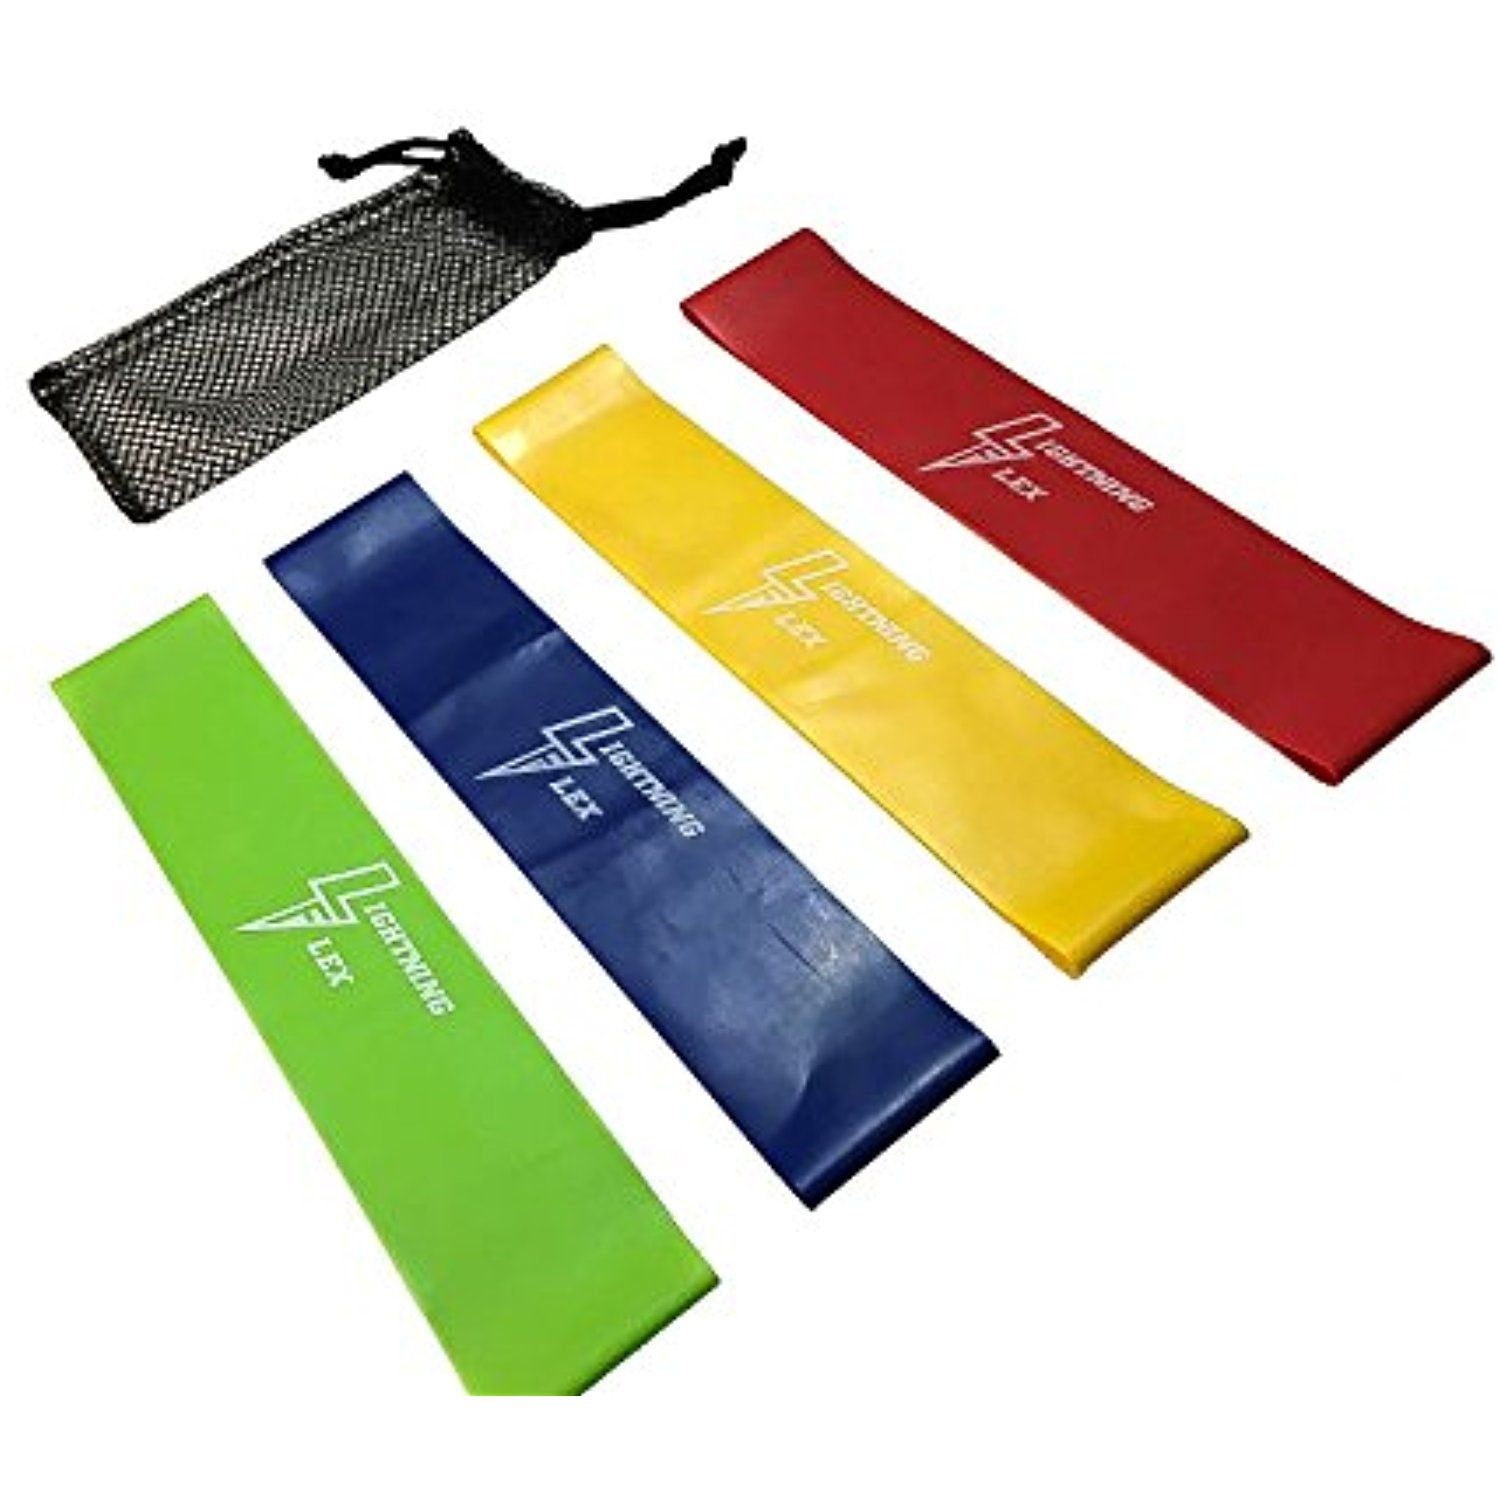 Exercise ExerciseFitnessAccessories Workout accessories